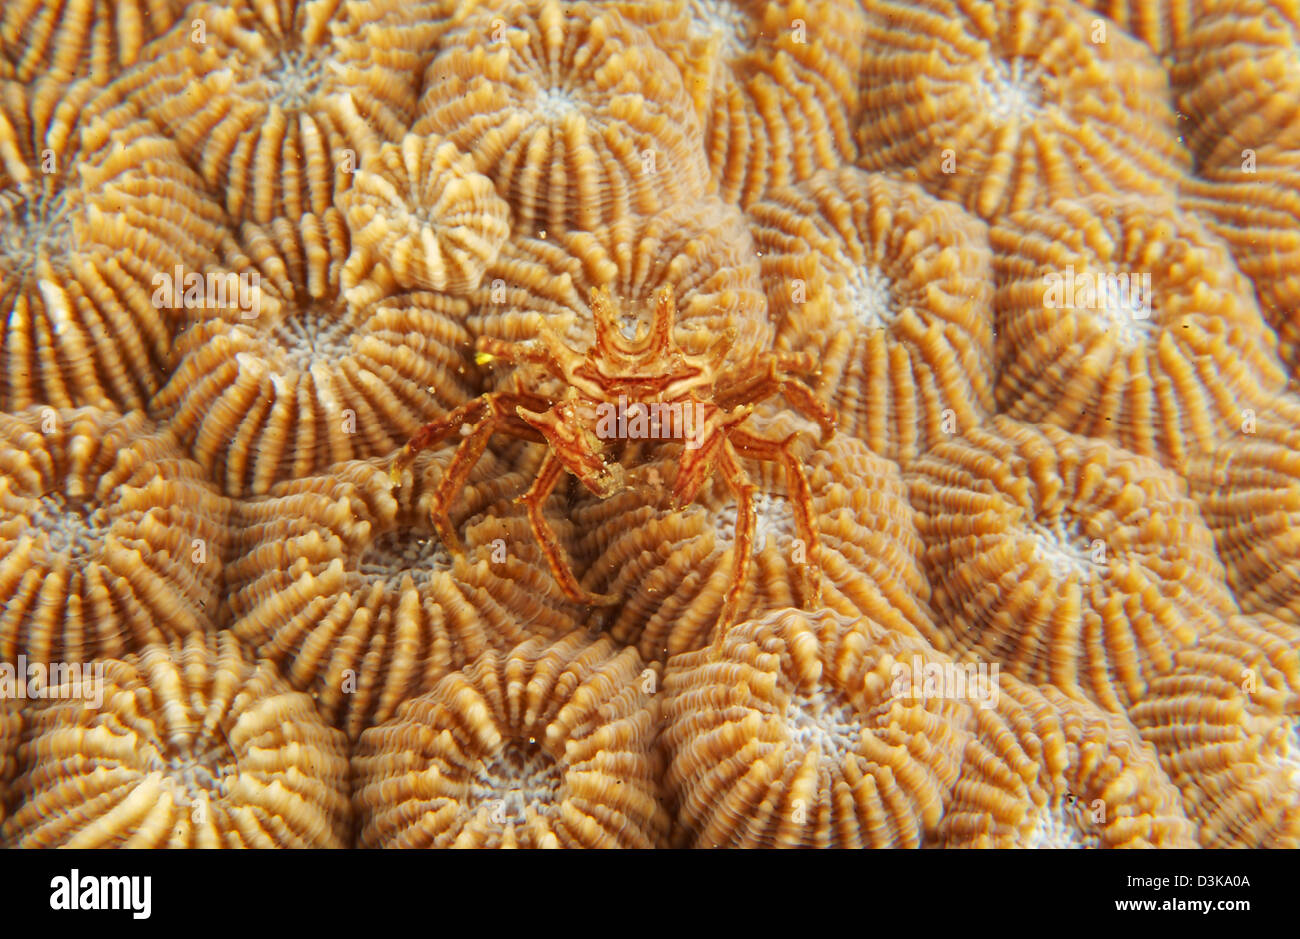 Tiny red and white crab on orange fire coral, North Sulawesi, Indonesia. - Stock Image